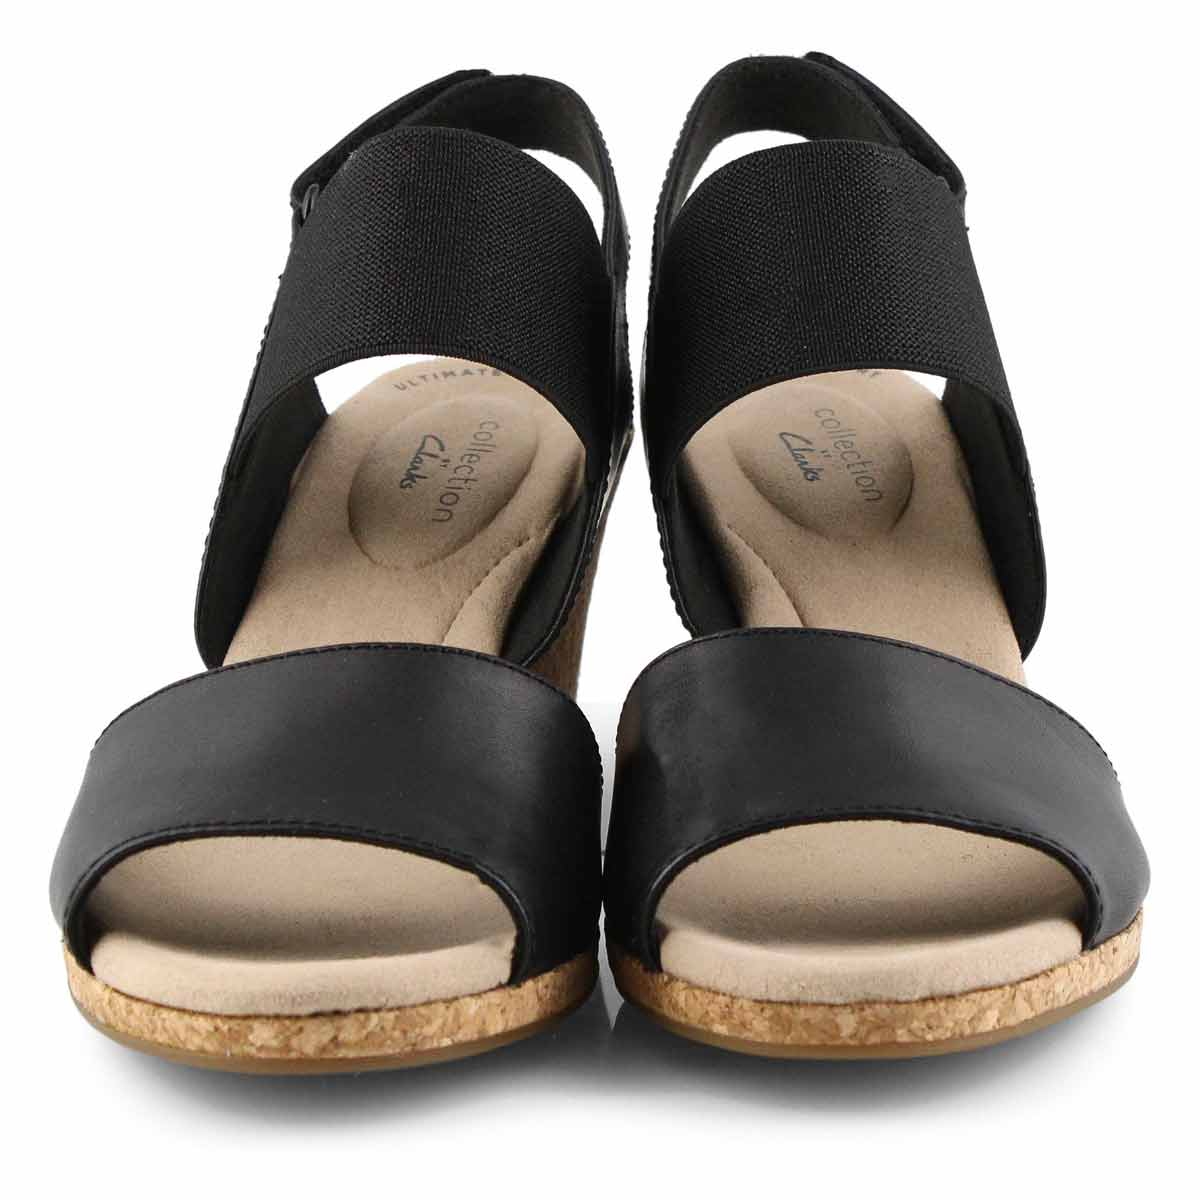 Lds Lafley Lily black wedge sandal -wide